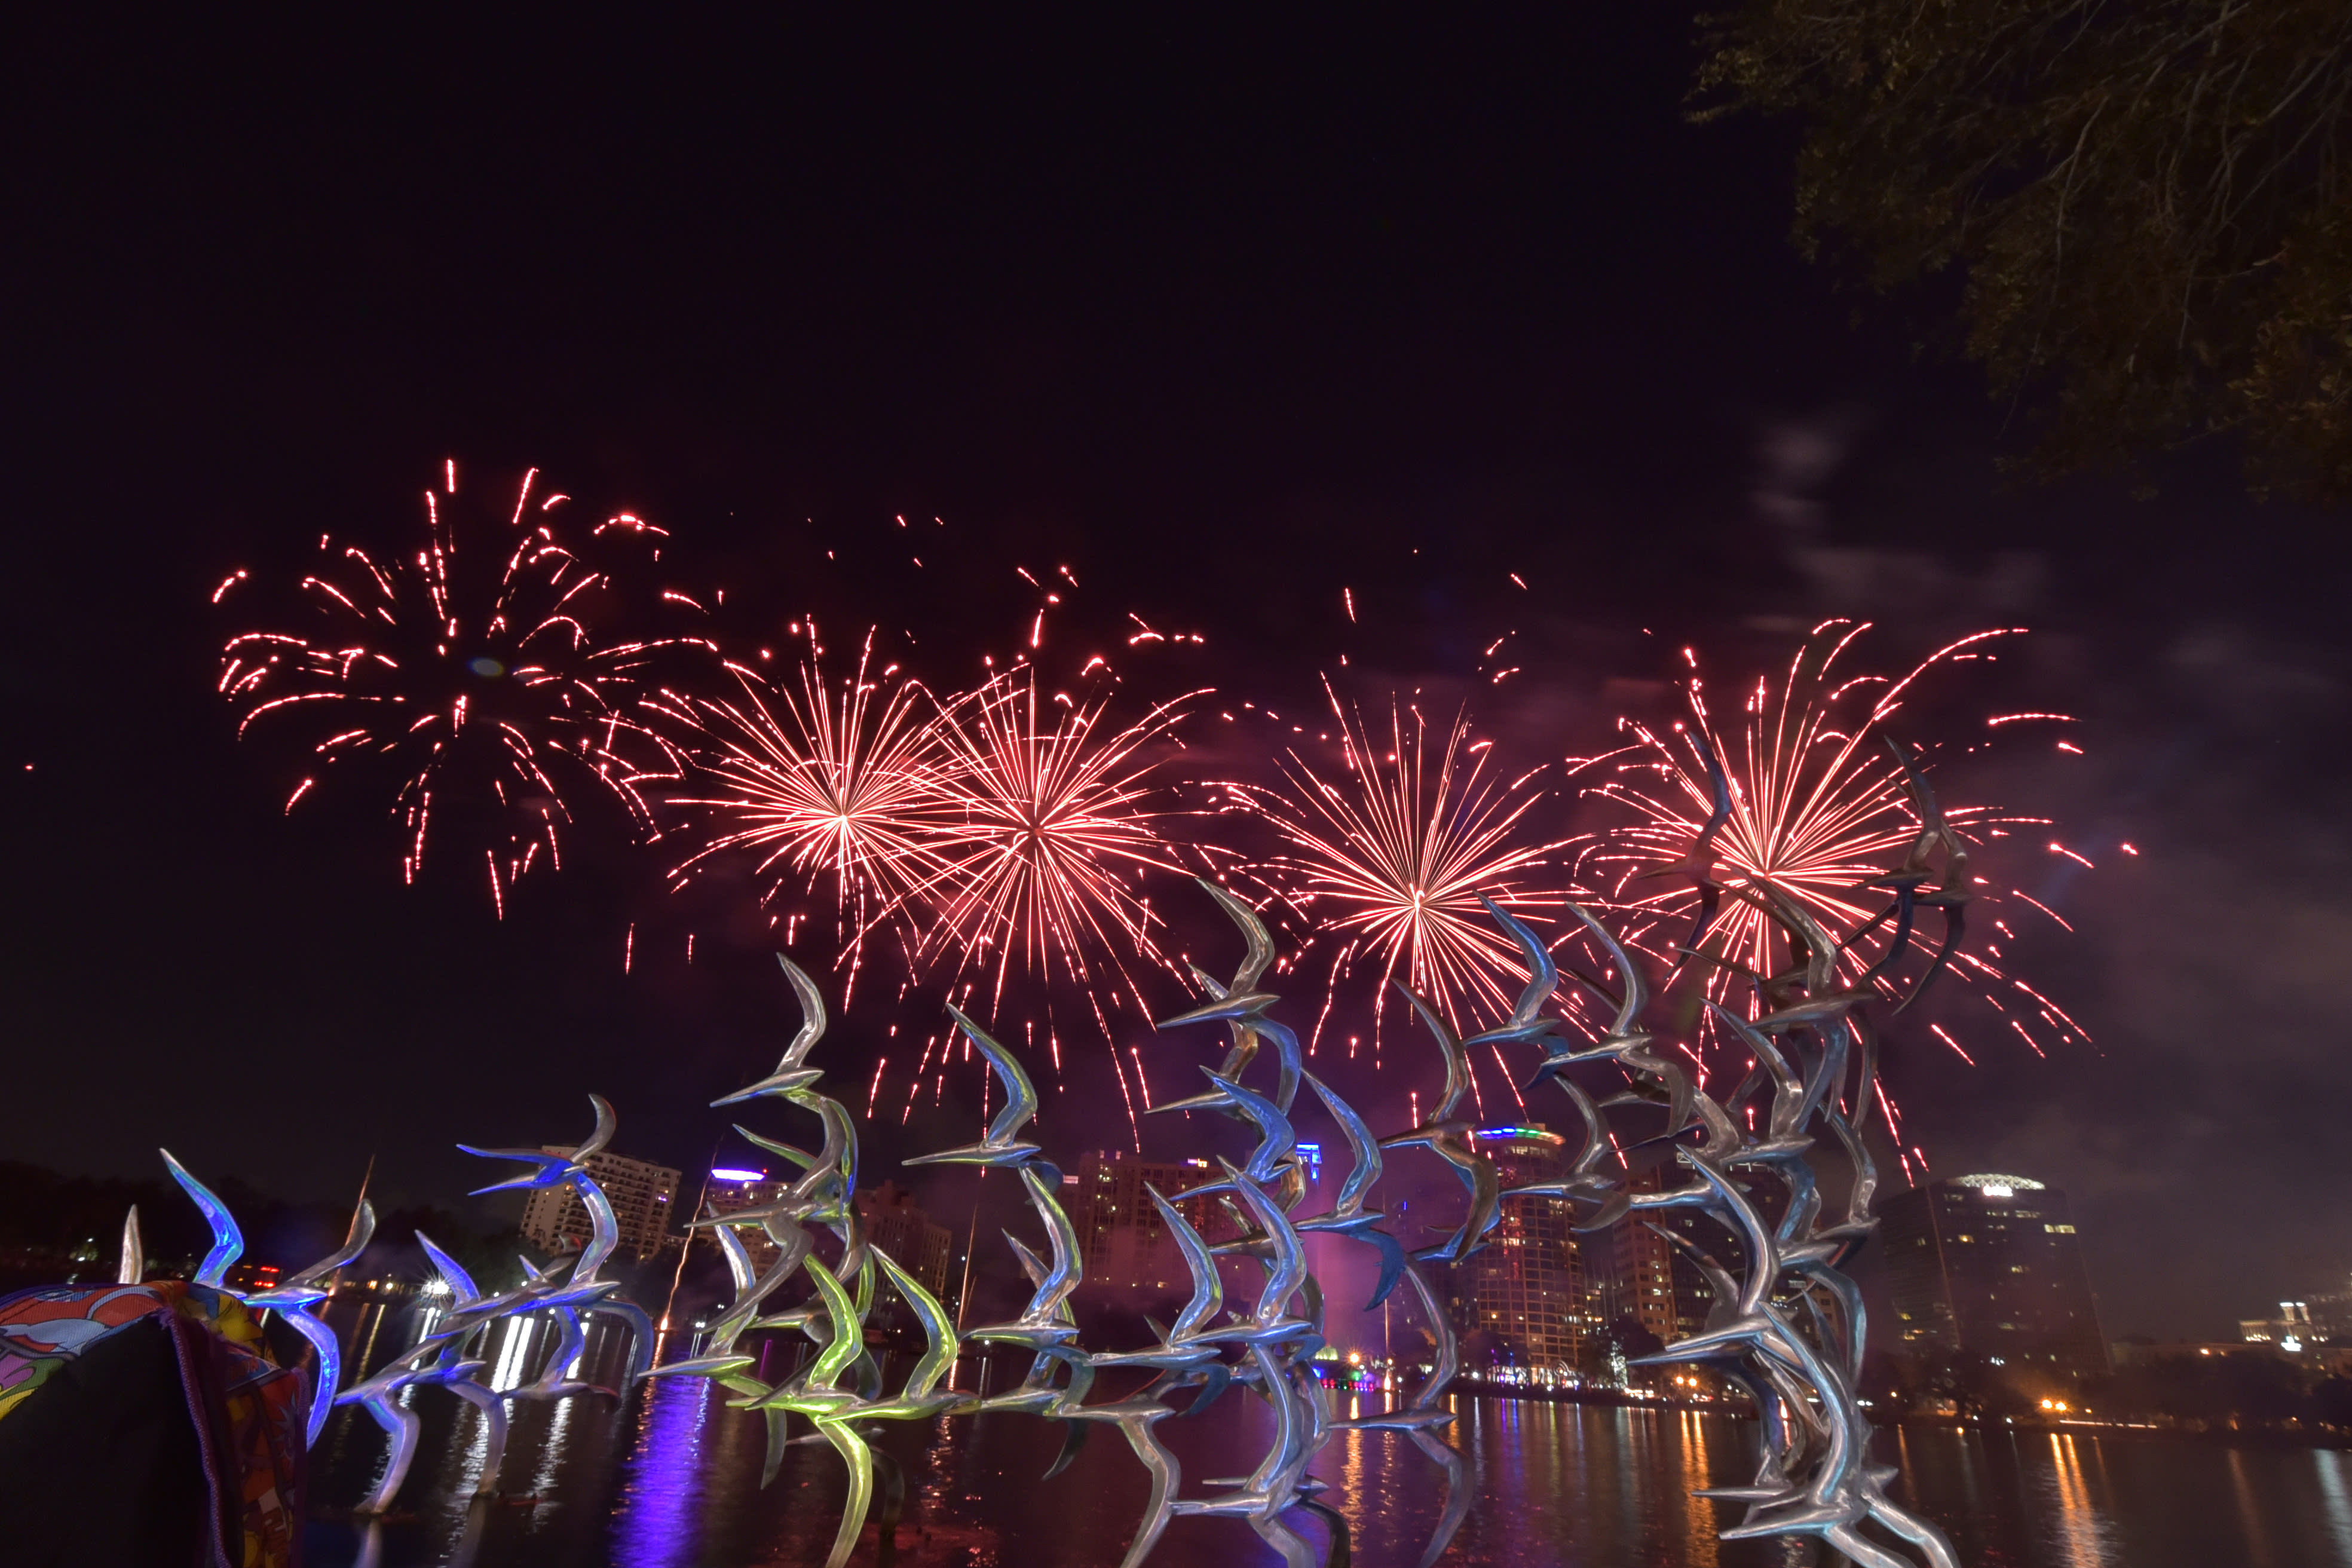 Come Out With Pride Festival Fireworks at Lake Eola Park in Orlando